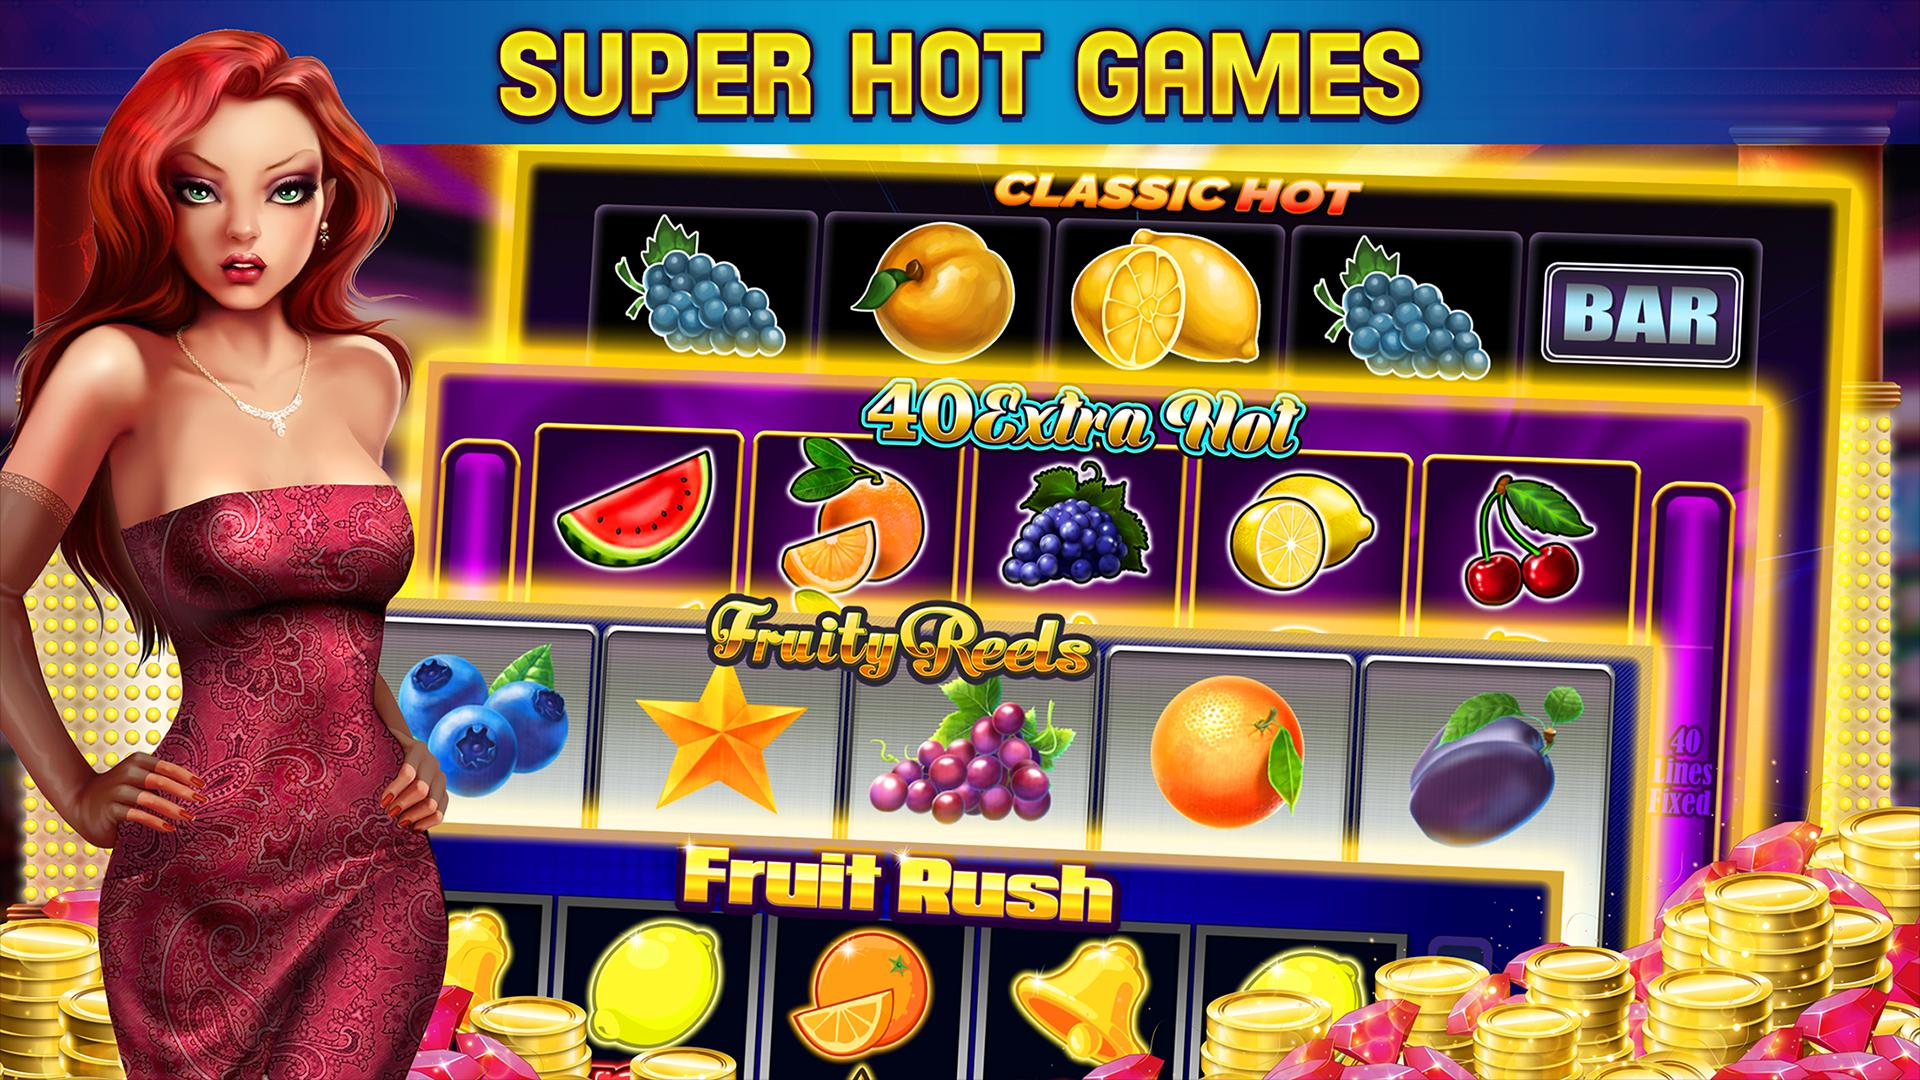 Free Downloadable Casino Slot Games